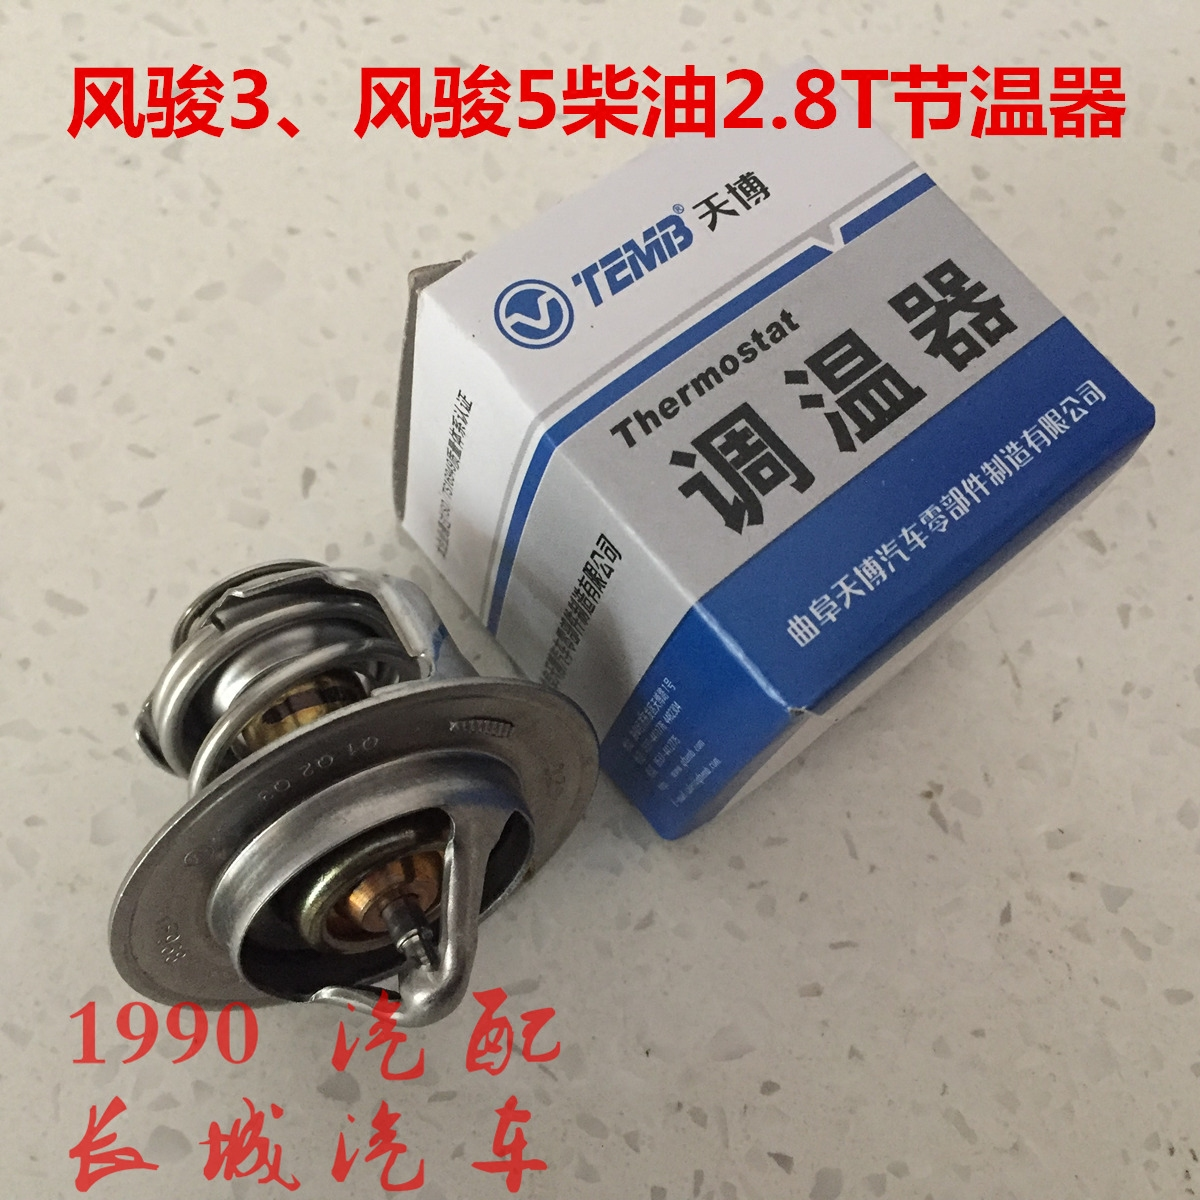 The Great Wall wind Chun 5 thermostat, 2.8T thermostat, water thermostat, engine temperature control switch, wind Chun 3 thermostat